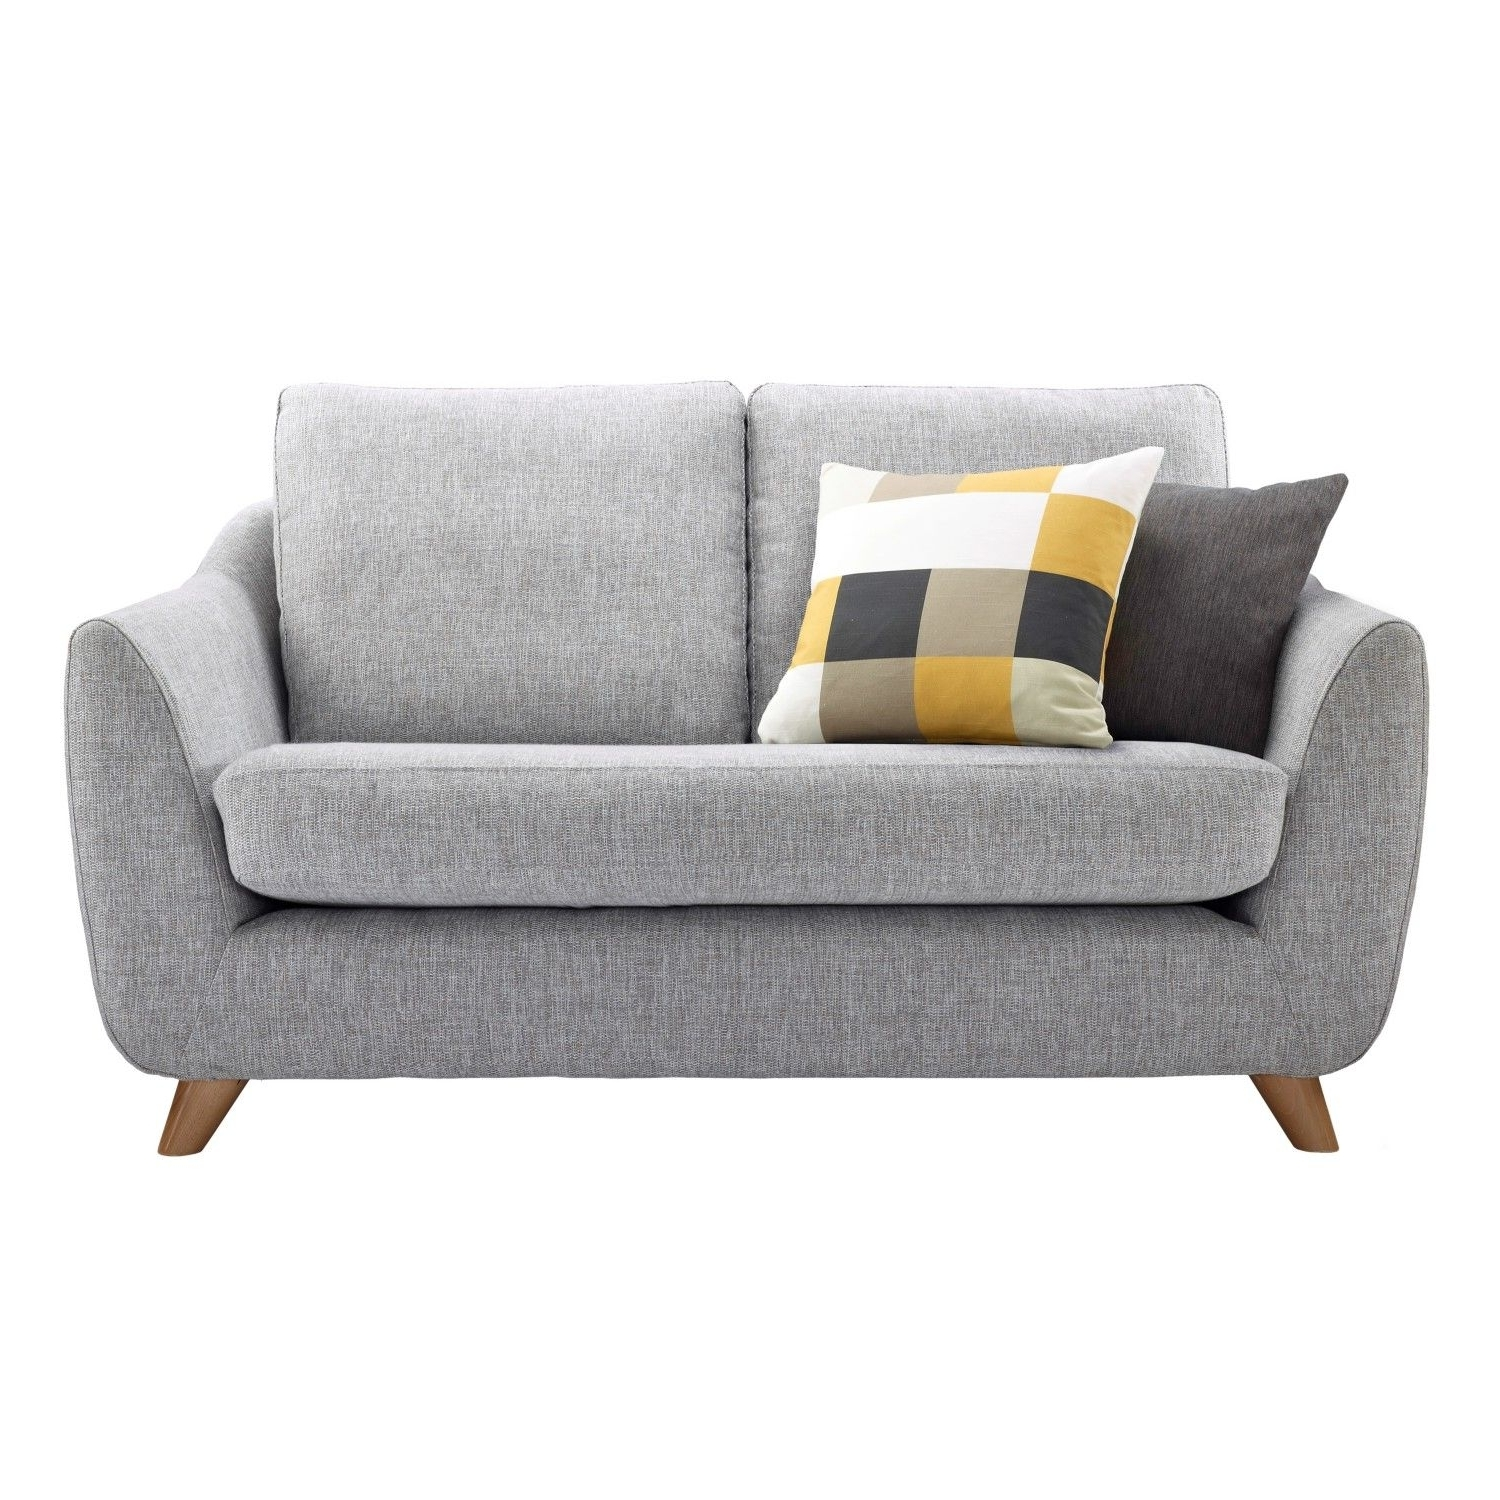 Armchair : Circular Sofa Sleeper Loveseats For Small Spaces Small Throughout Current Small Sofa Chaises (View 2 of 15)